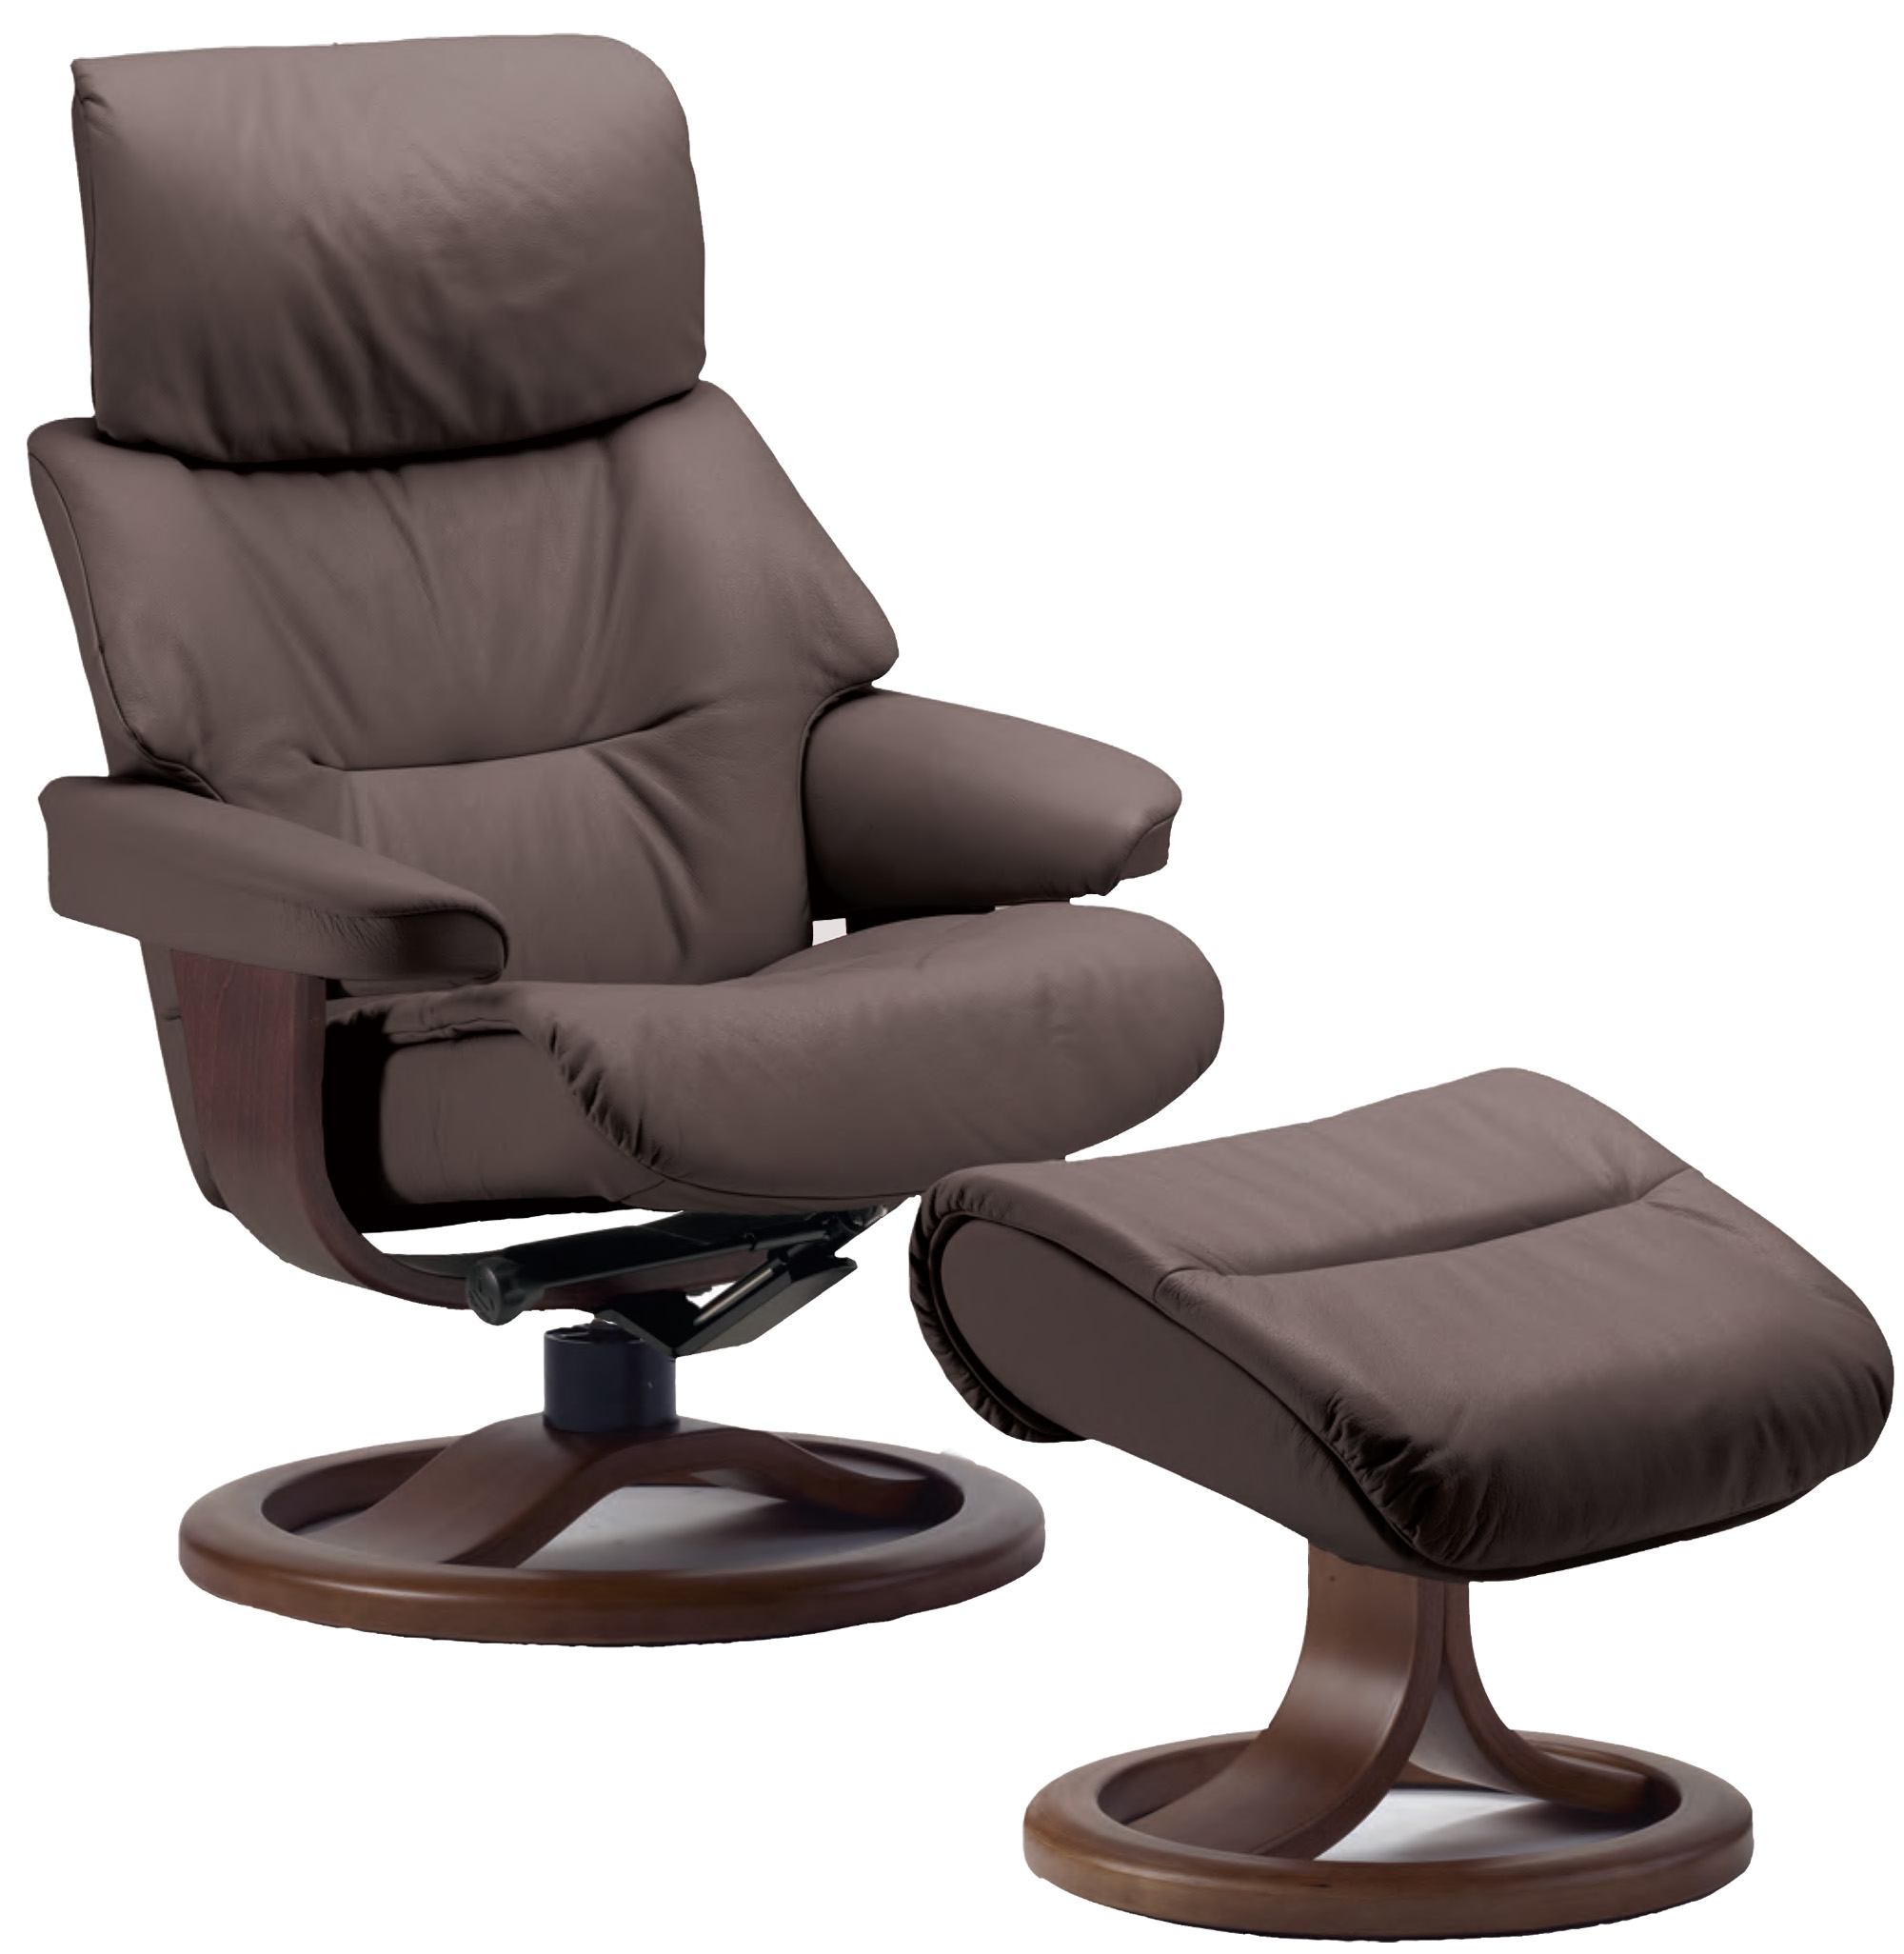 Fjords Grip Ergonomic Leather Recliner Chair Ottoman – Reclining Chairs with Ottomans